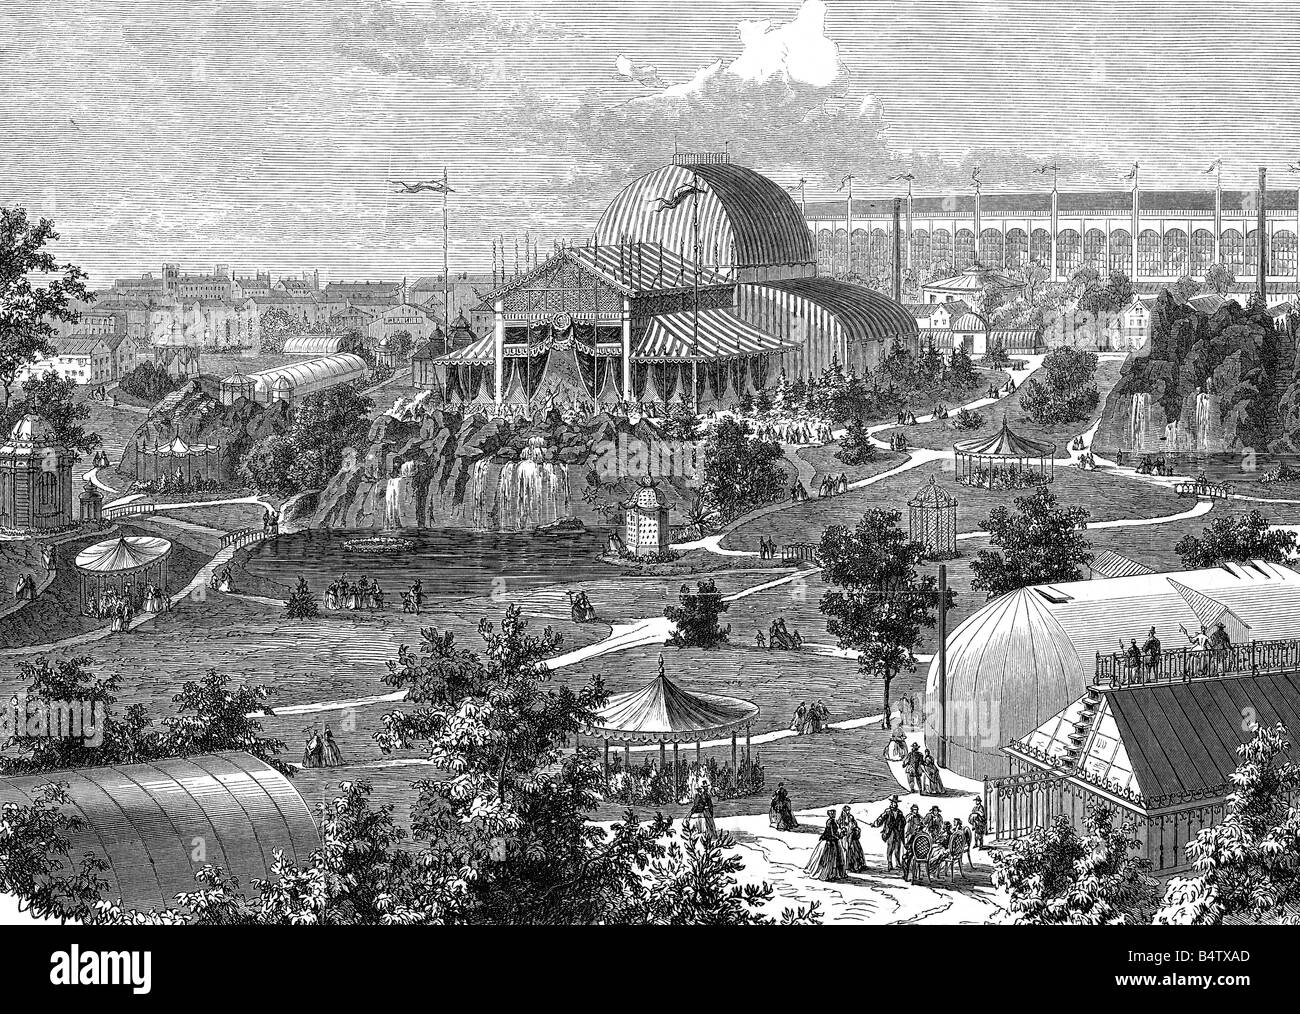 exhibitions, world exposition, Paris, 1.4.1867 - 31.12.1867, site at Champ de Mars, wood engraving, Germany, 1867, - Stock Image